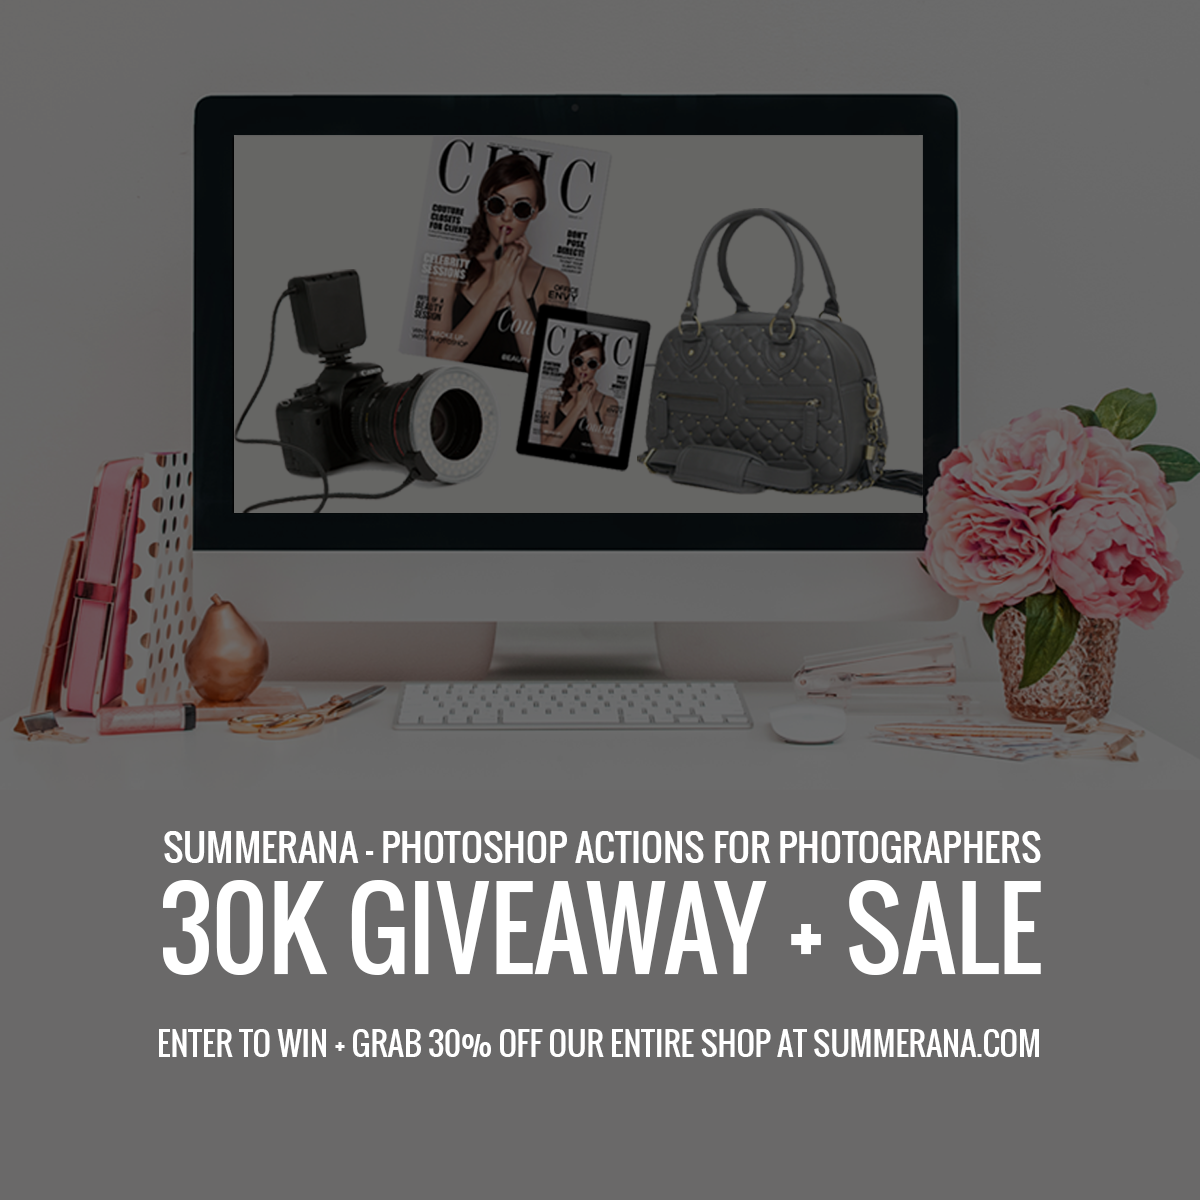 summerana-photoshop-actions-for-photographers-giveaway-30k